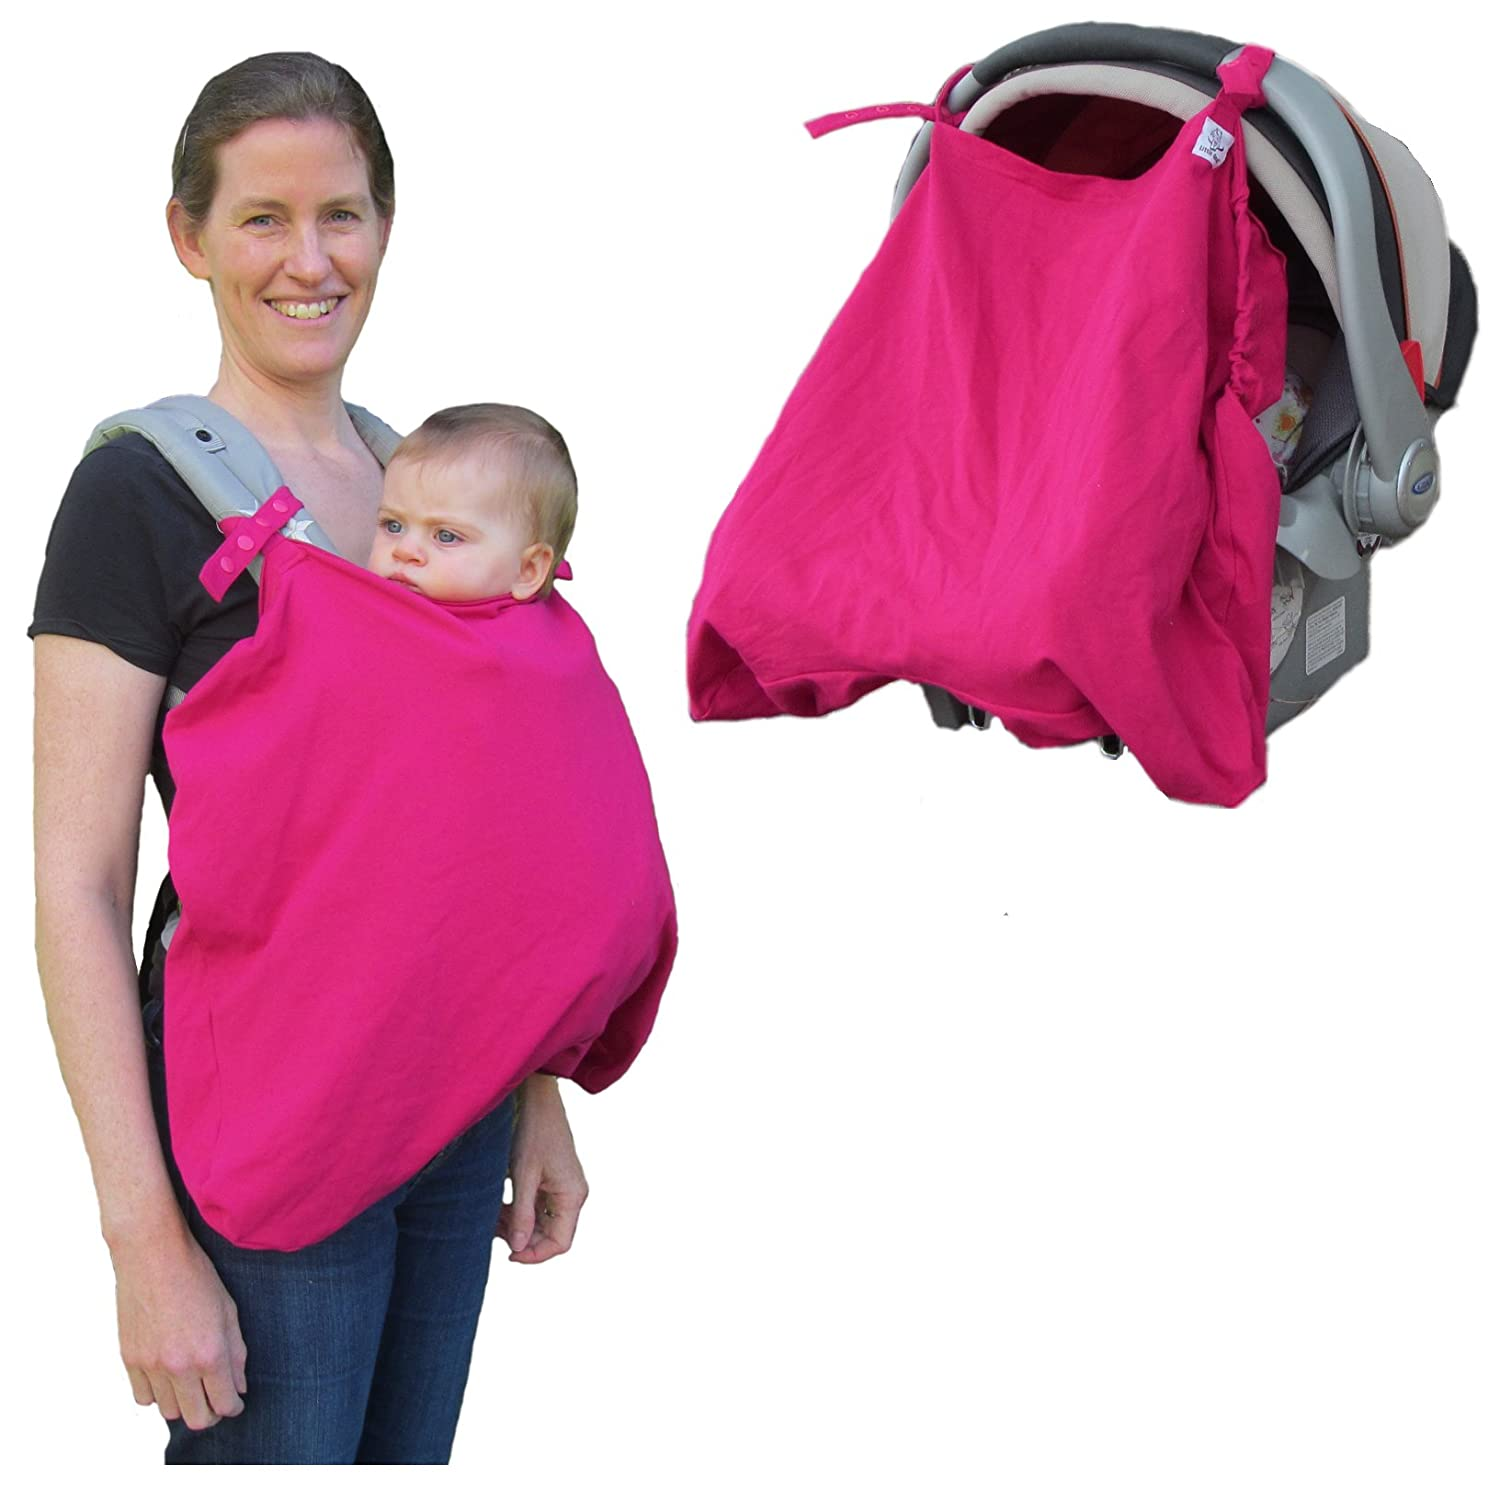 Little Goat Sun Cover UPF 50 for Car Seats, Baby Carriers & Strollers (Pink) Little Goat Carrier Covers